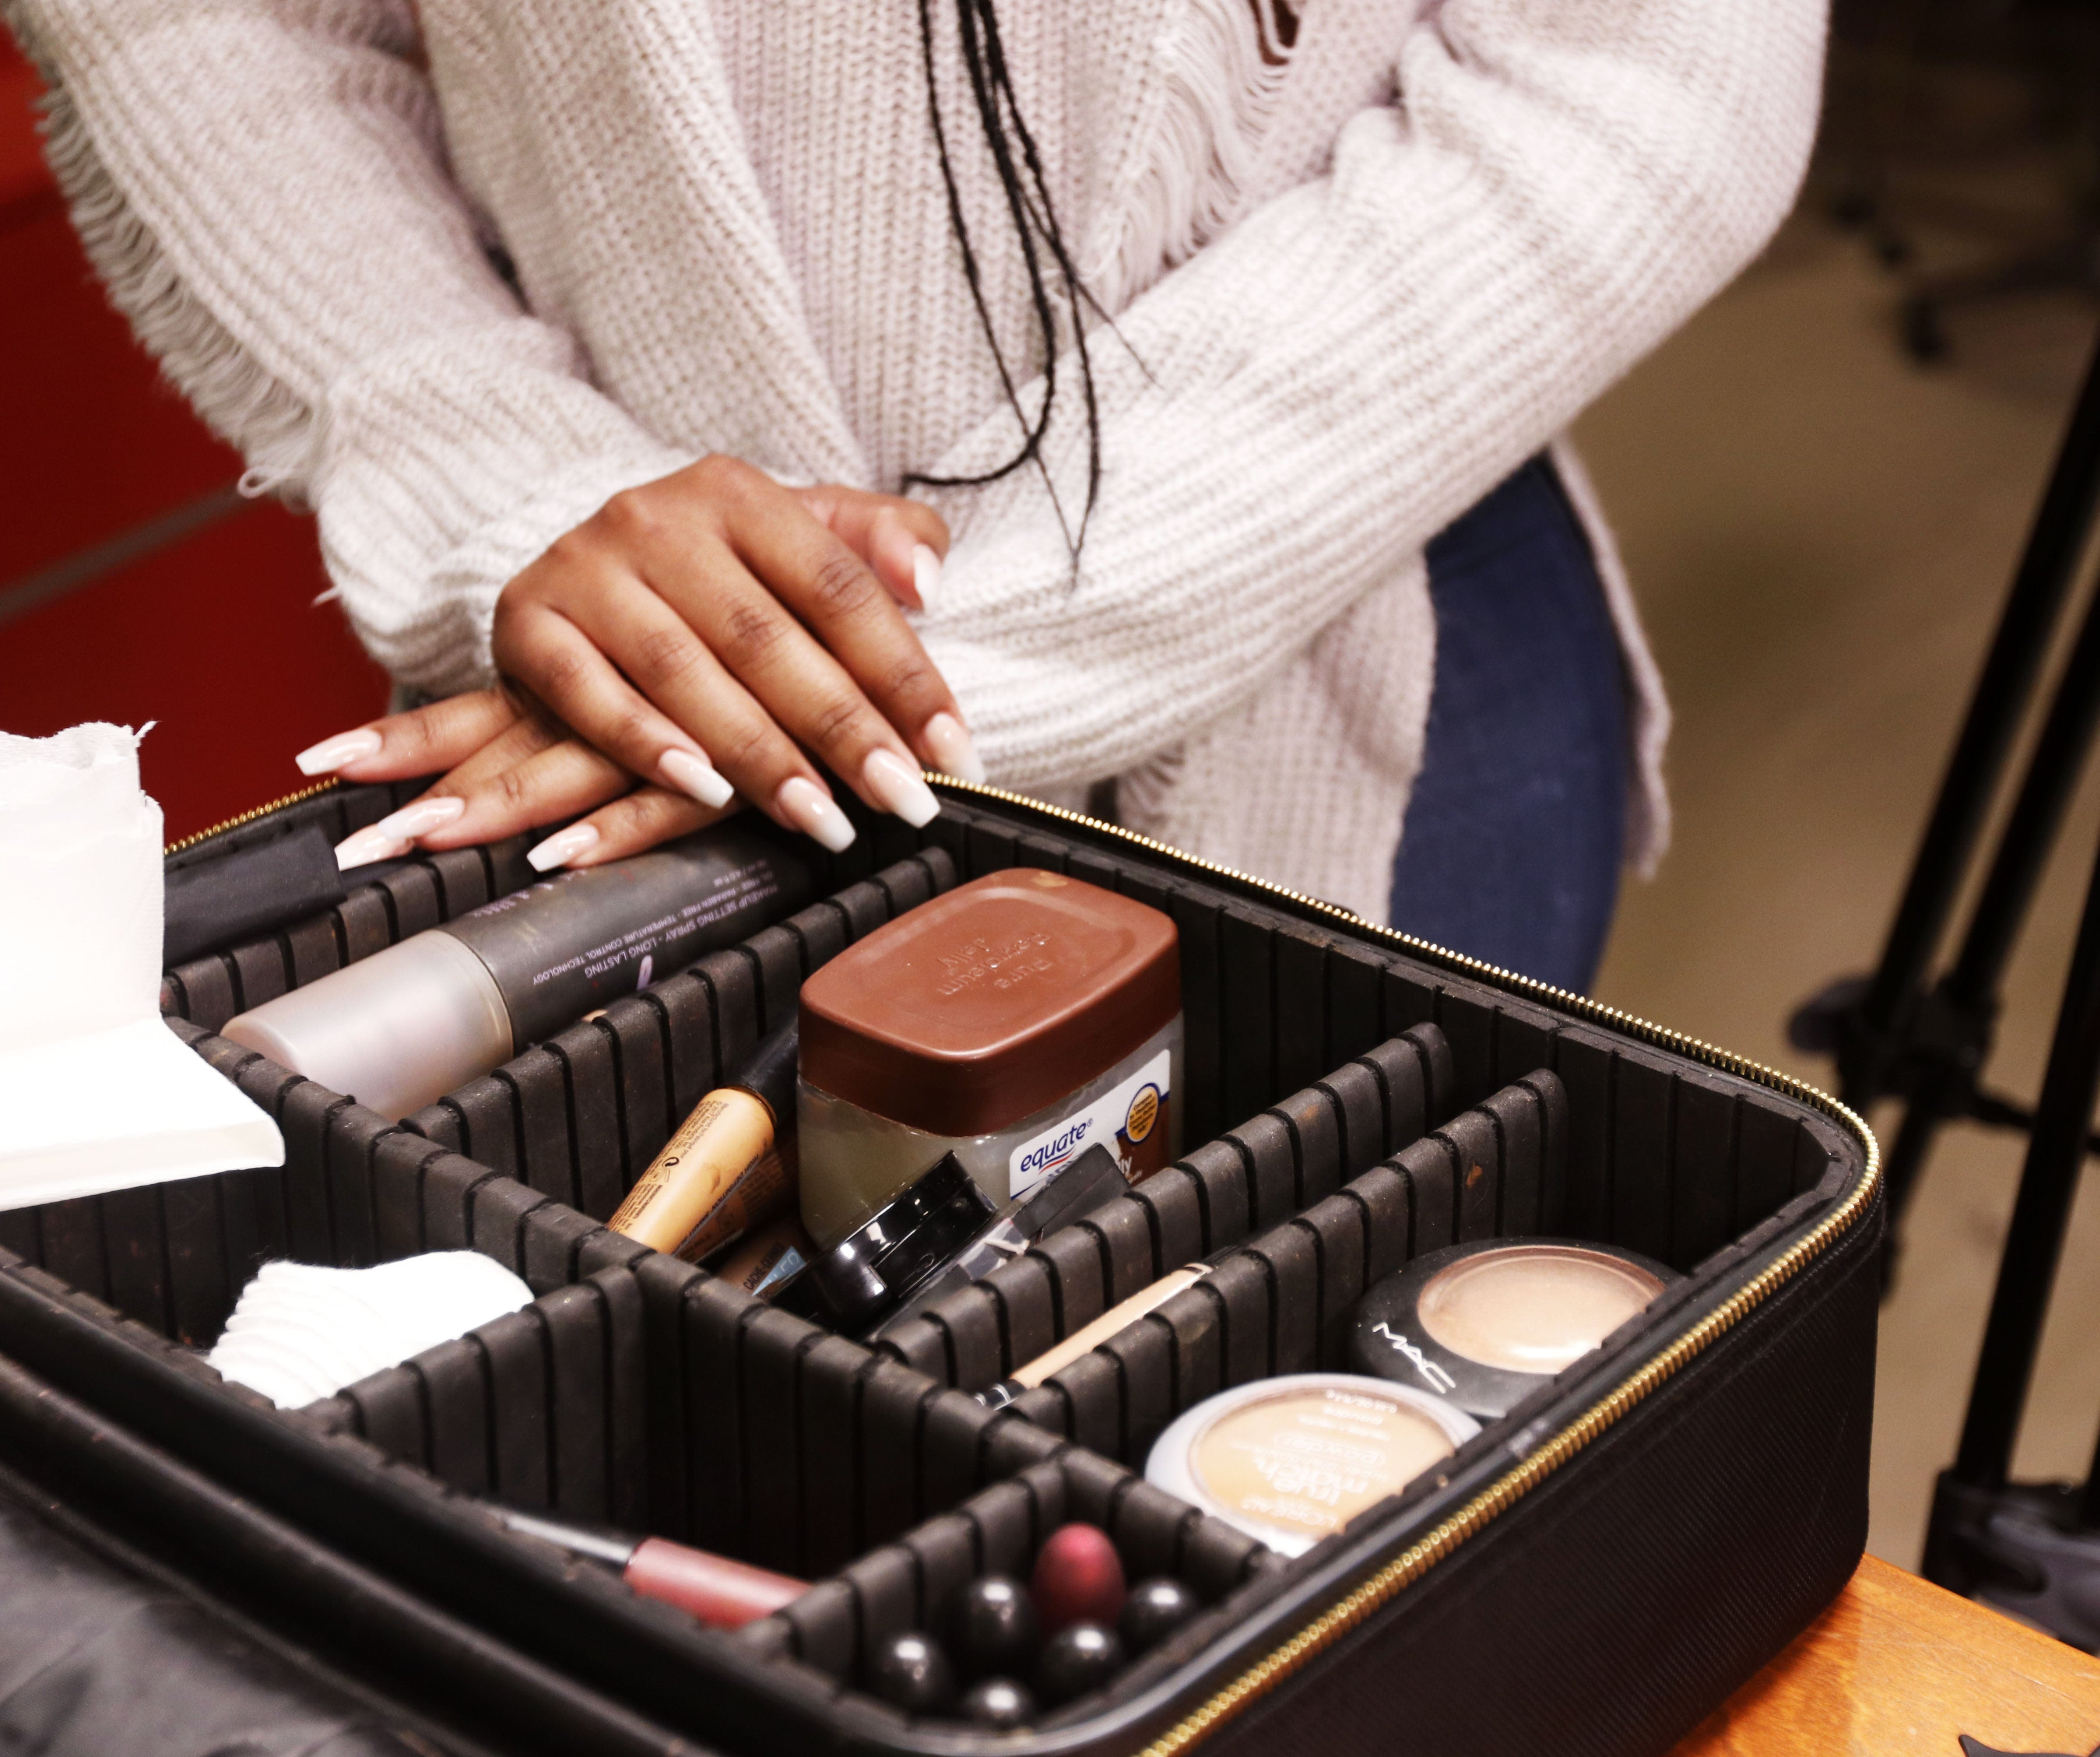 Johnna Young's makeup kit. Young brought it to the studio to give reporter Enya Spicer a prom-style makeover.